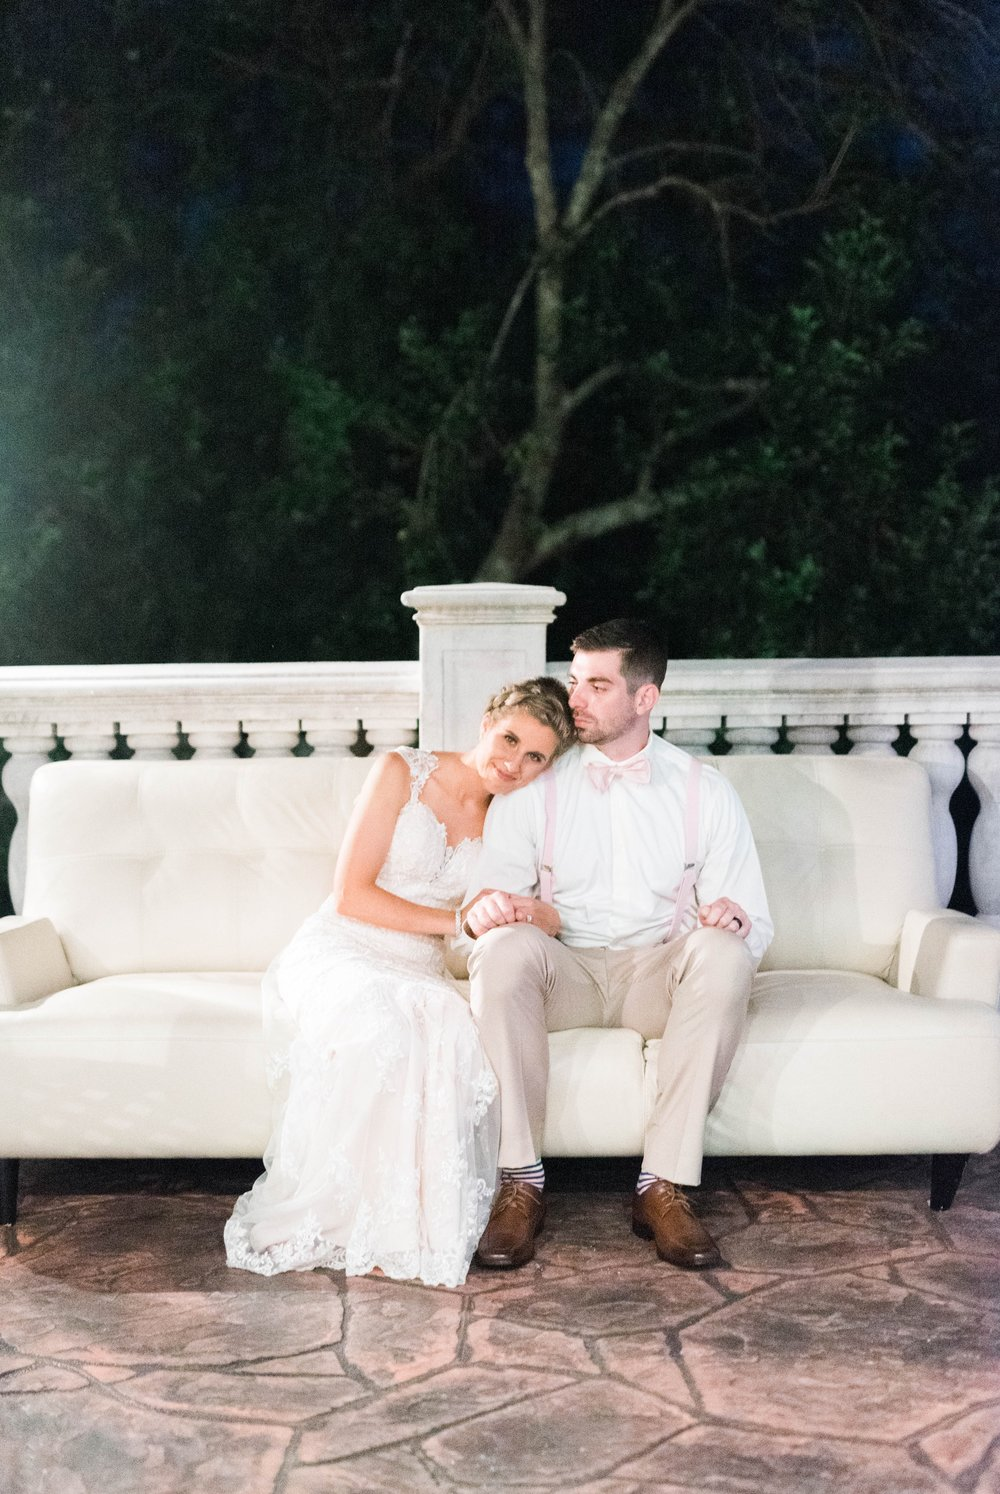 BedfordColumns_EntwinedEvents_Lynchburgwedding_VIrginiaweddingphotographer_ALlisonNIck 30.jpg